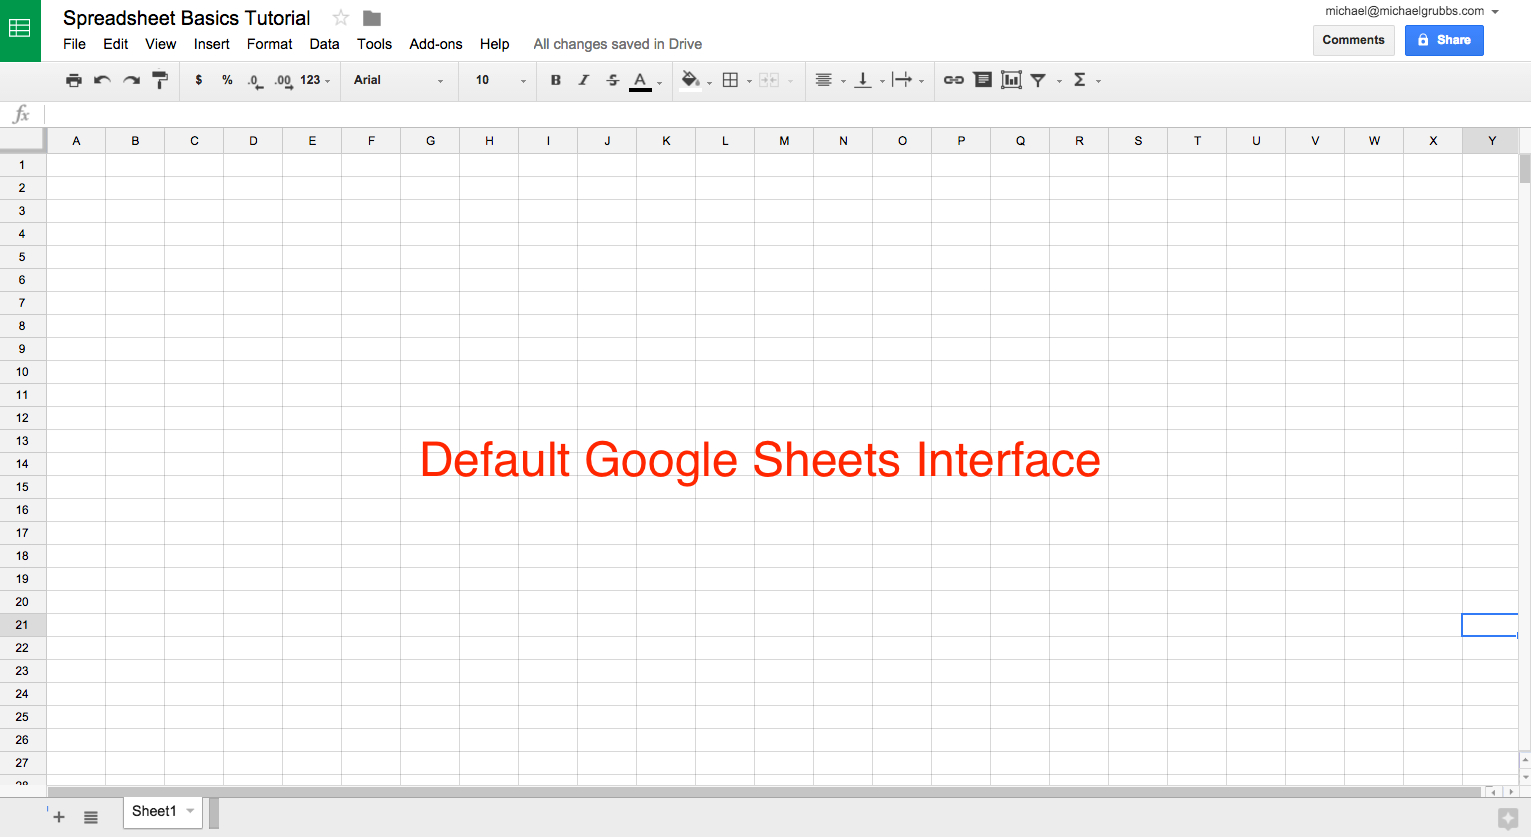 Online Spreadsheet Editor Intended For Google Sheets 101: The Beginner's Guide To Online Spreadsheets  The